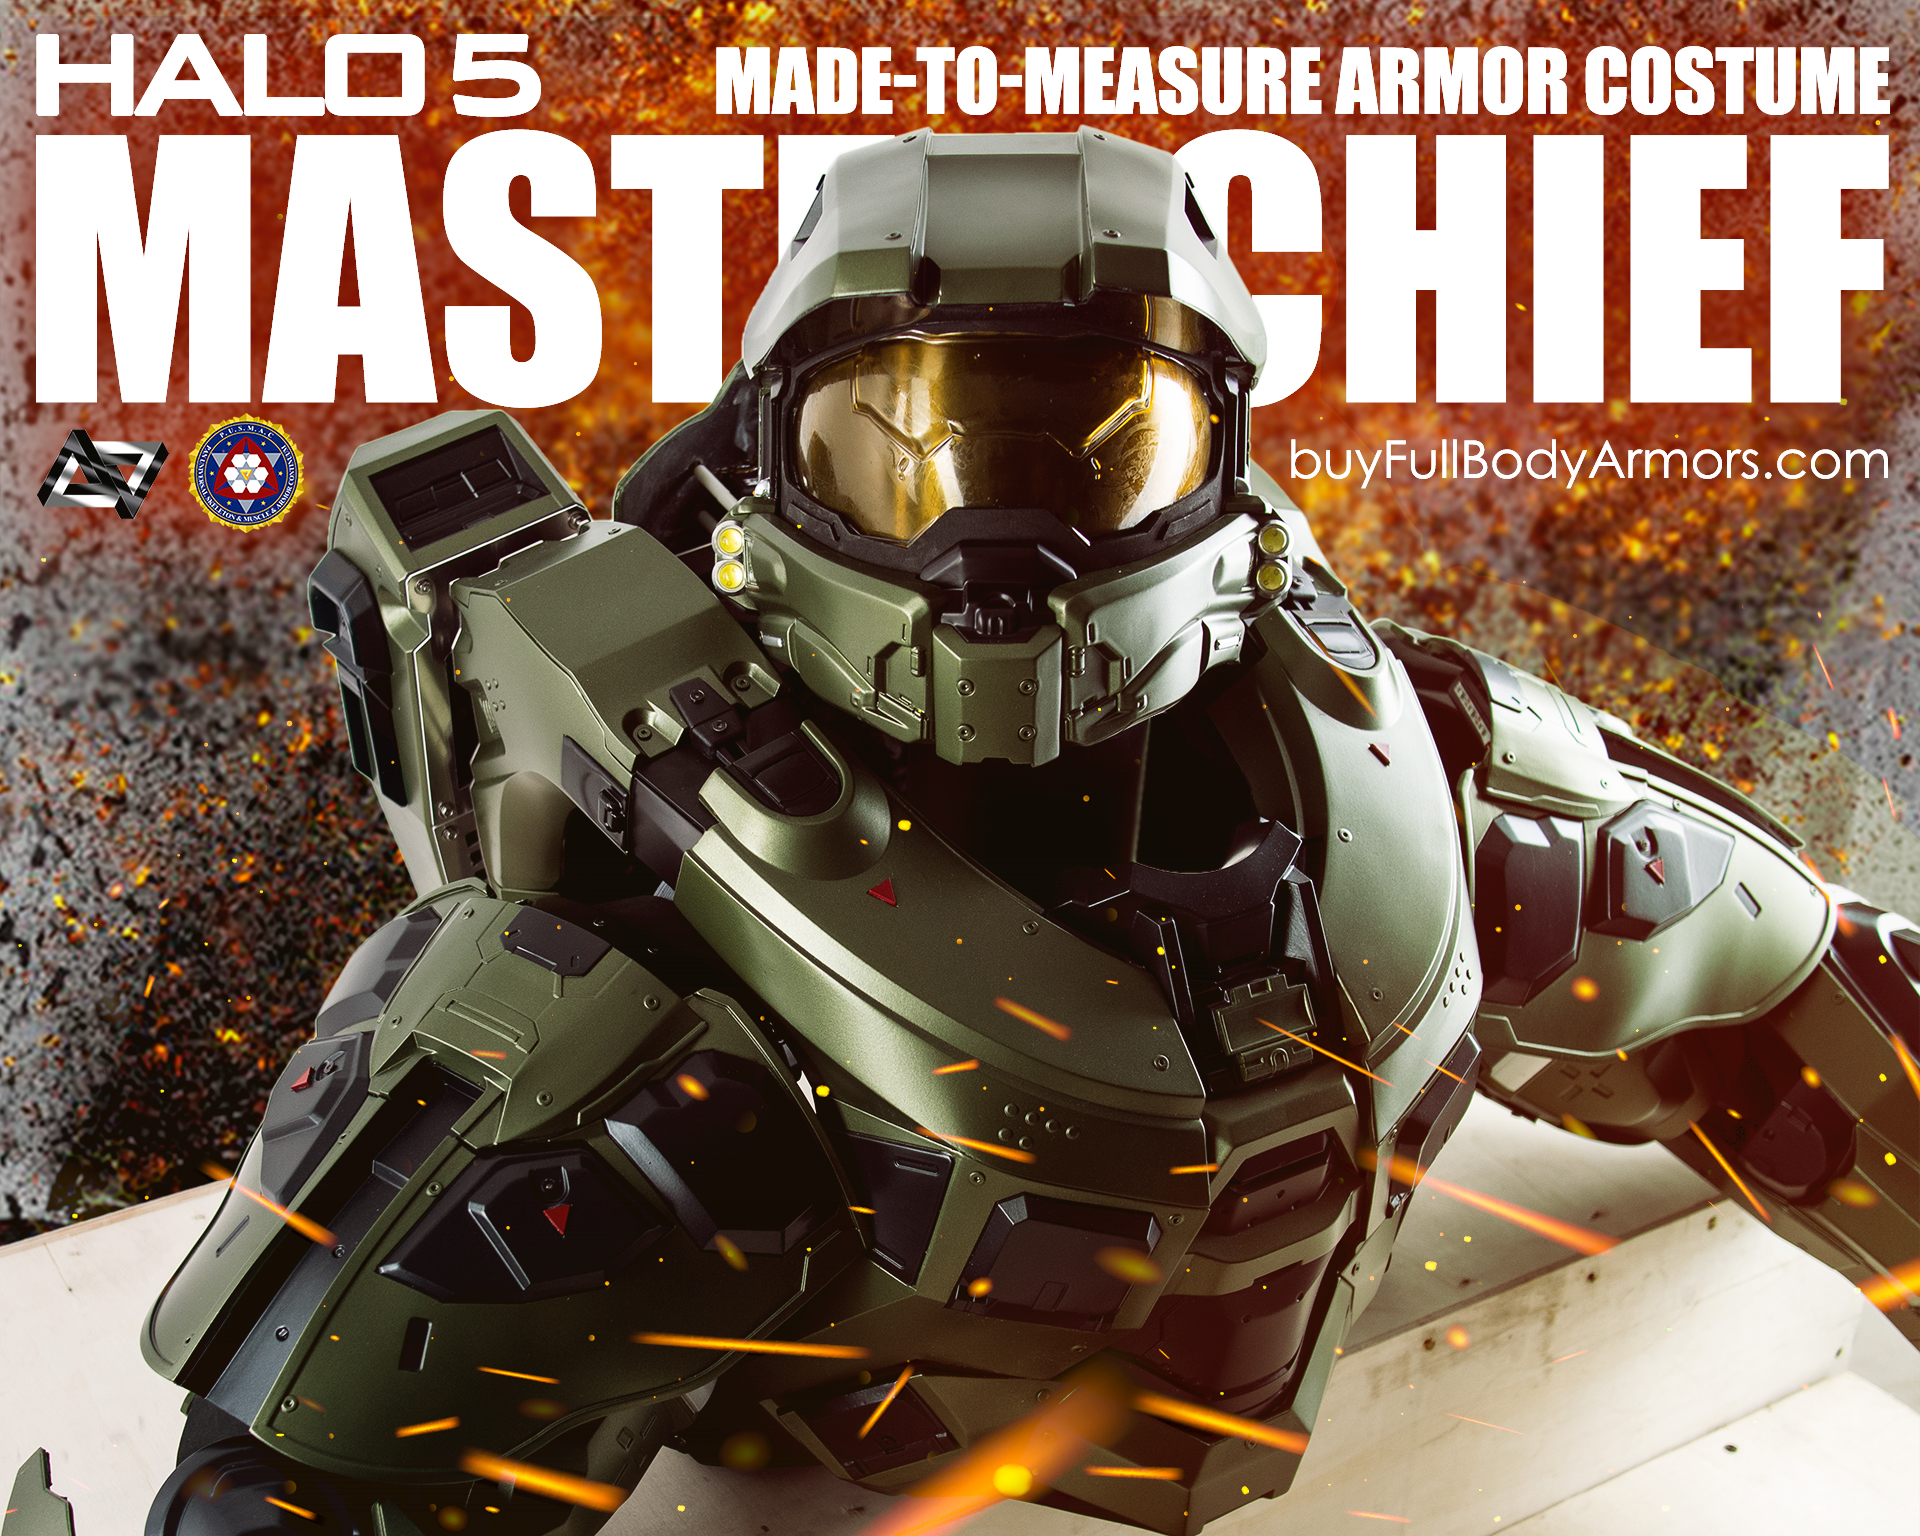 Photos of New Master Chief Mark VI Armor Costume in Halo 5 top half 2